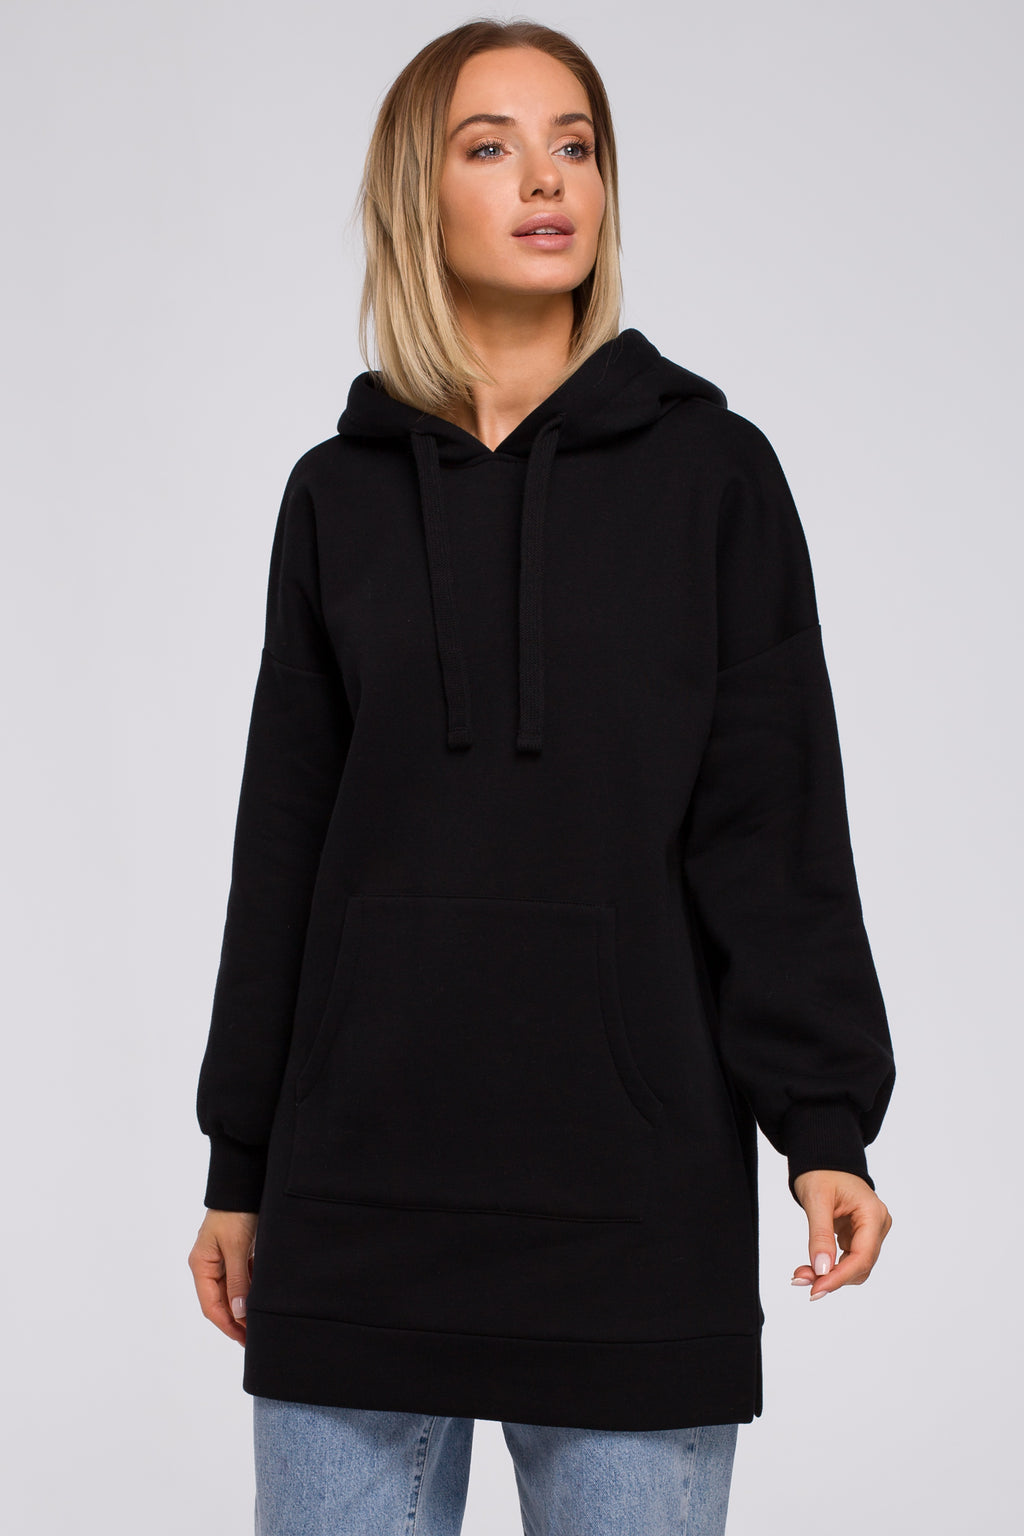 Black Long Sweatshirt With A Hood - So Chic Boutique